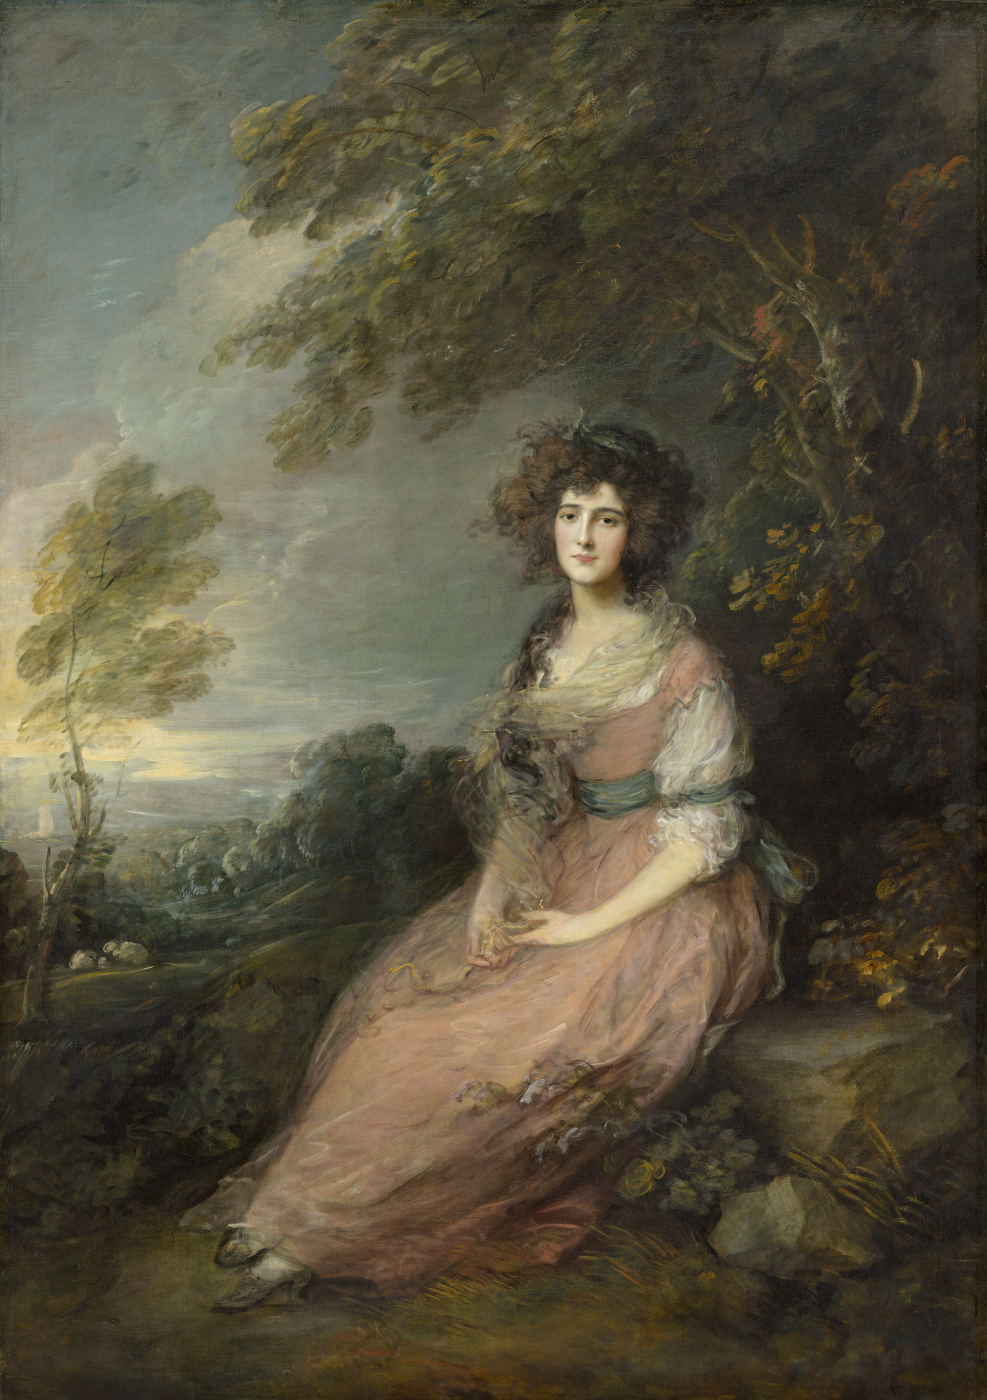 Thomas Gainsborough. Portrait of Mrs. Richard Brinsley Sheridan